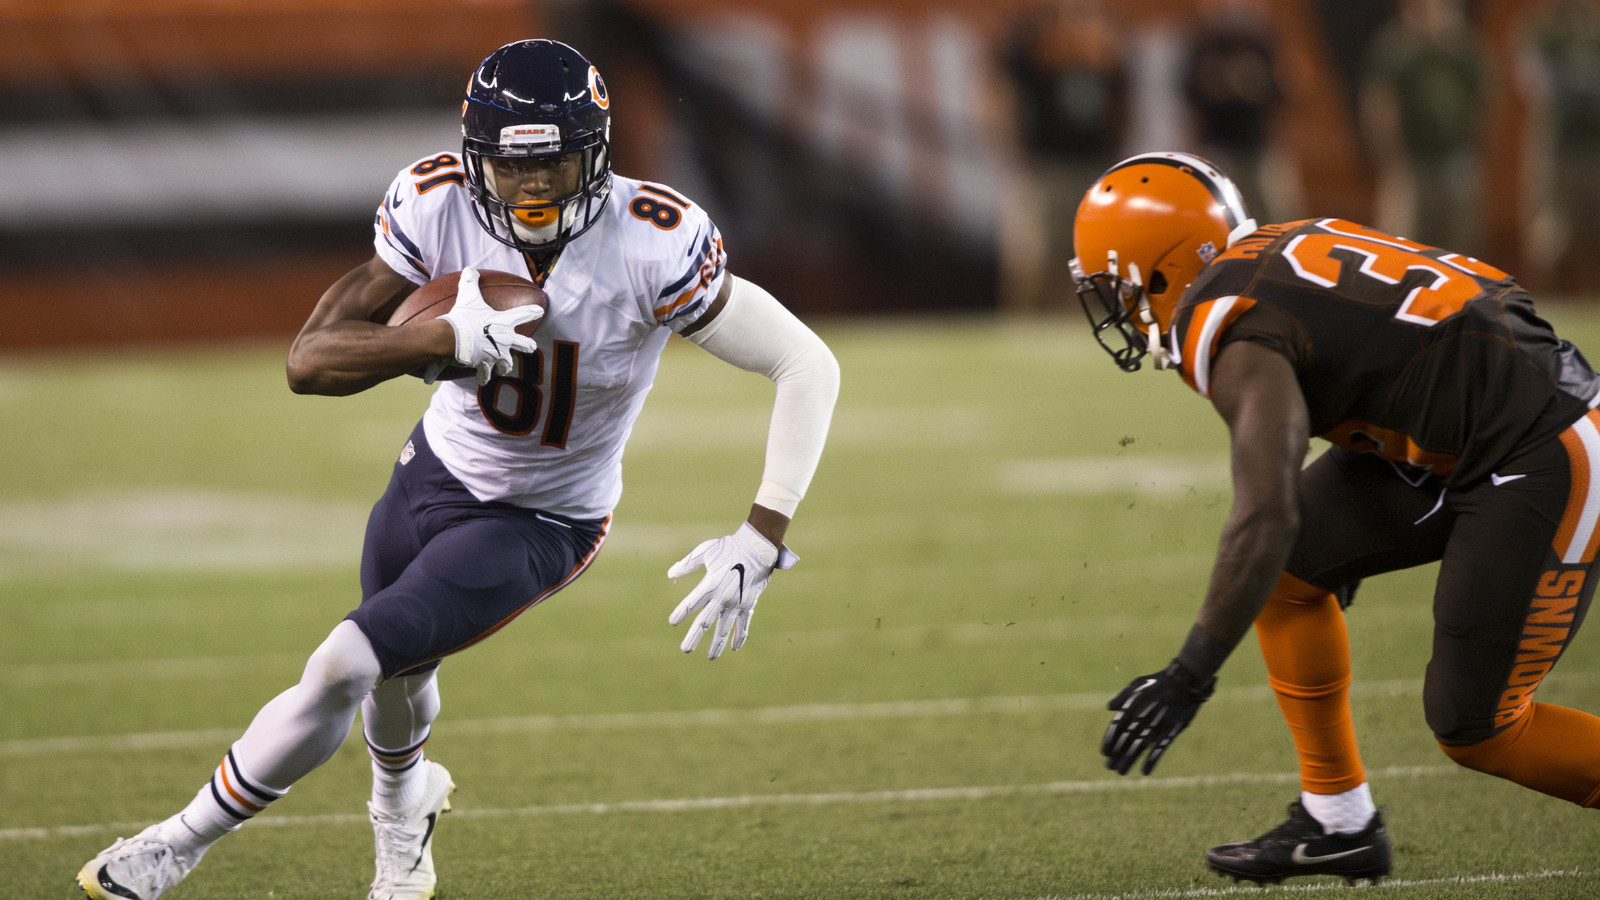 Saints land WR Cameron Meredith after Bears decline to match offer